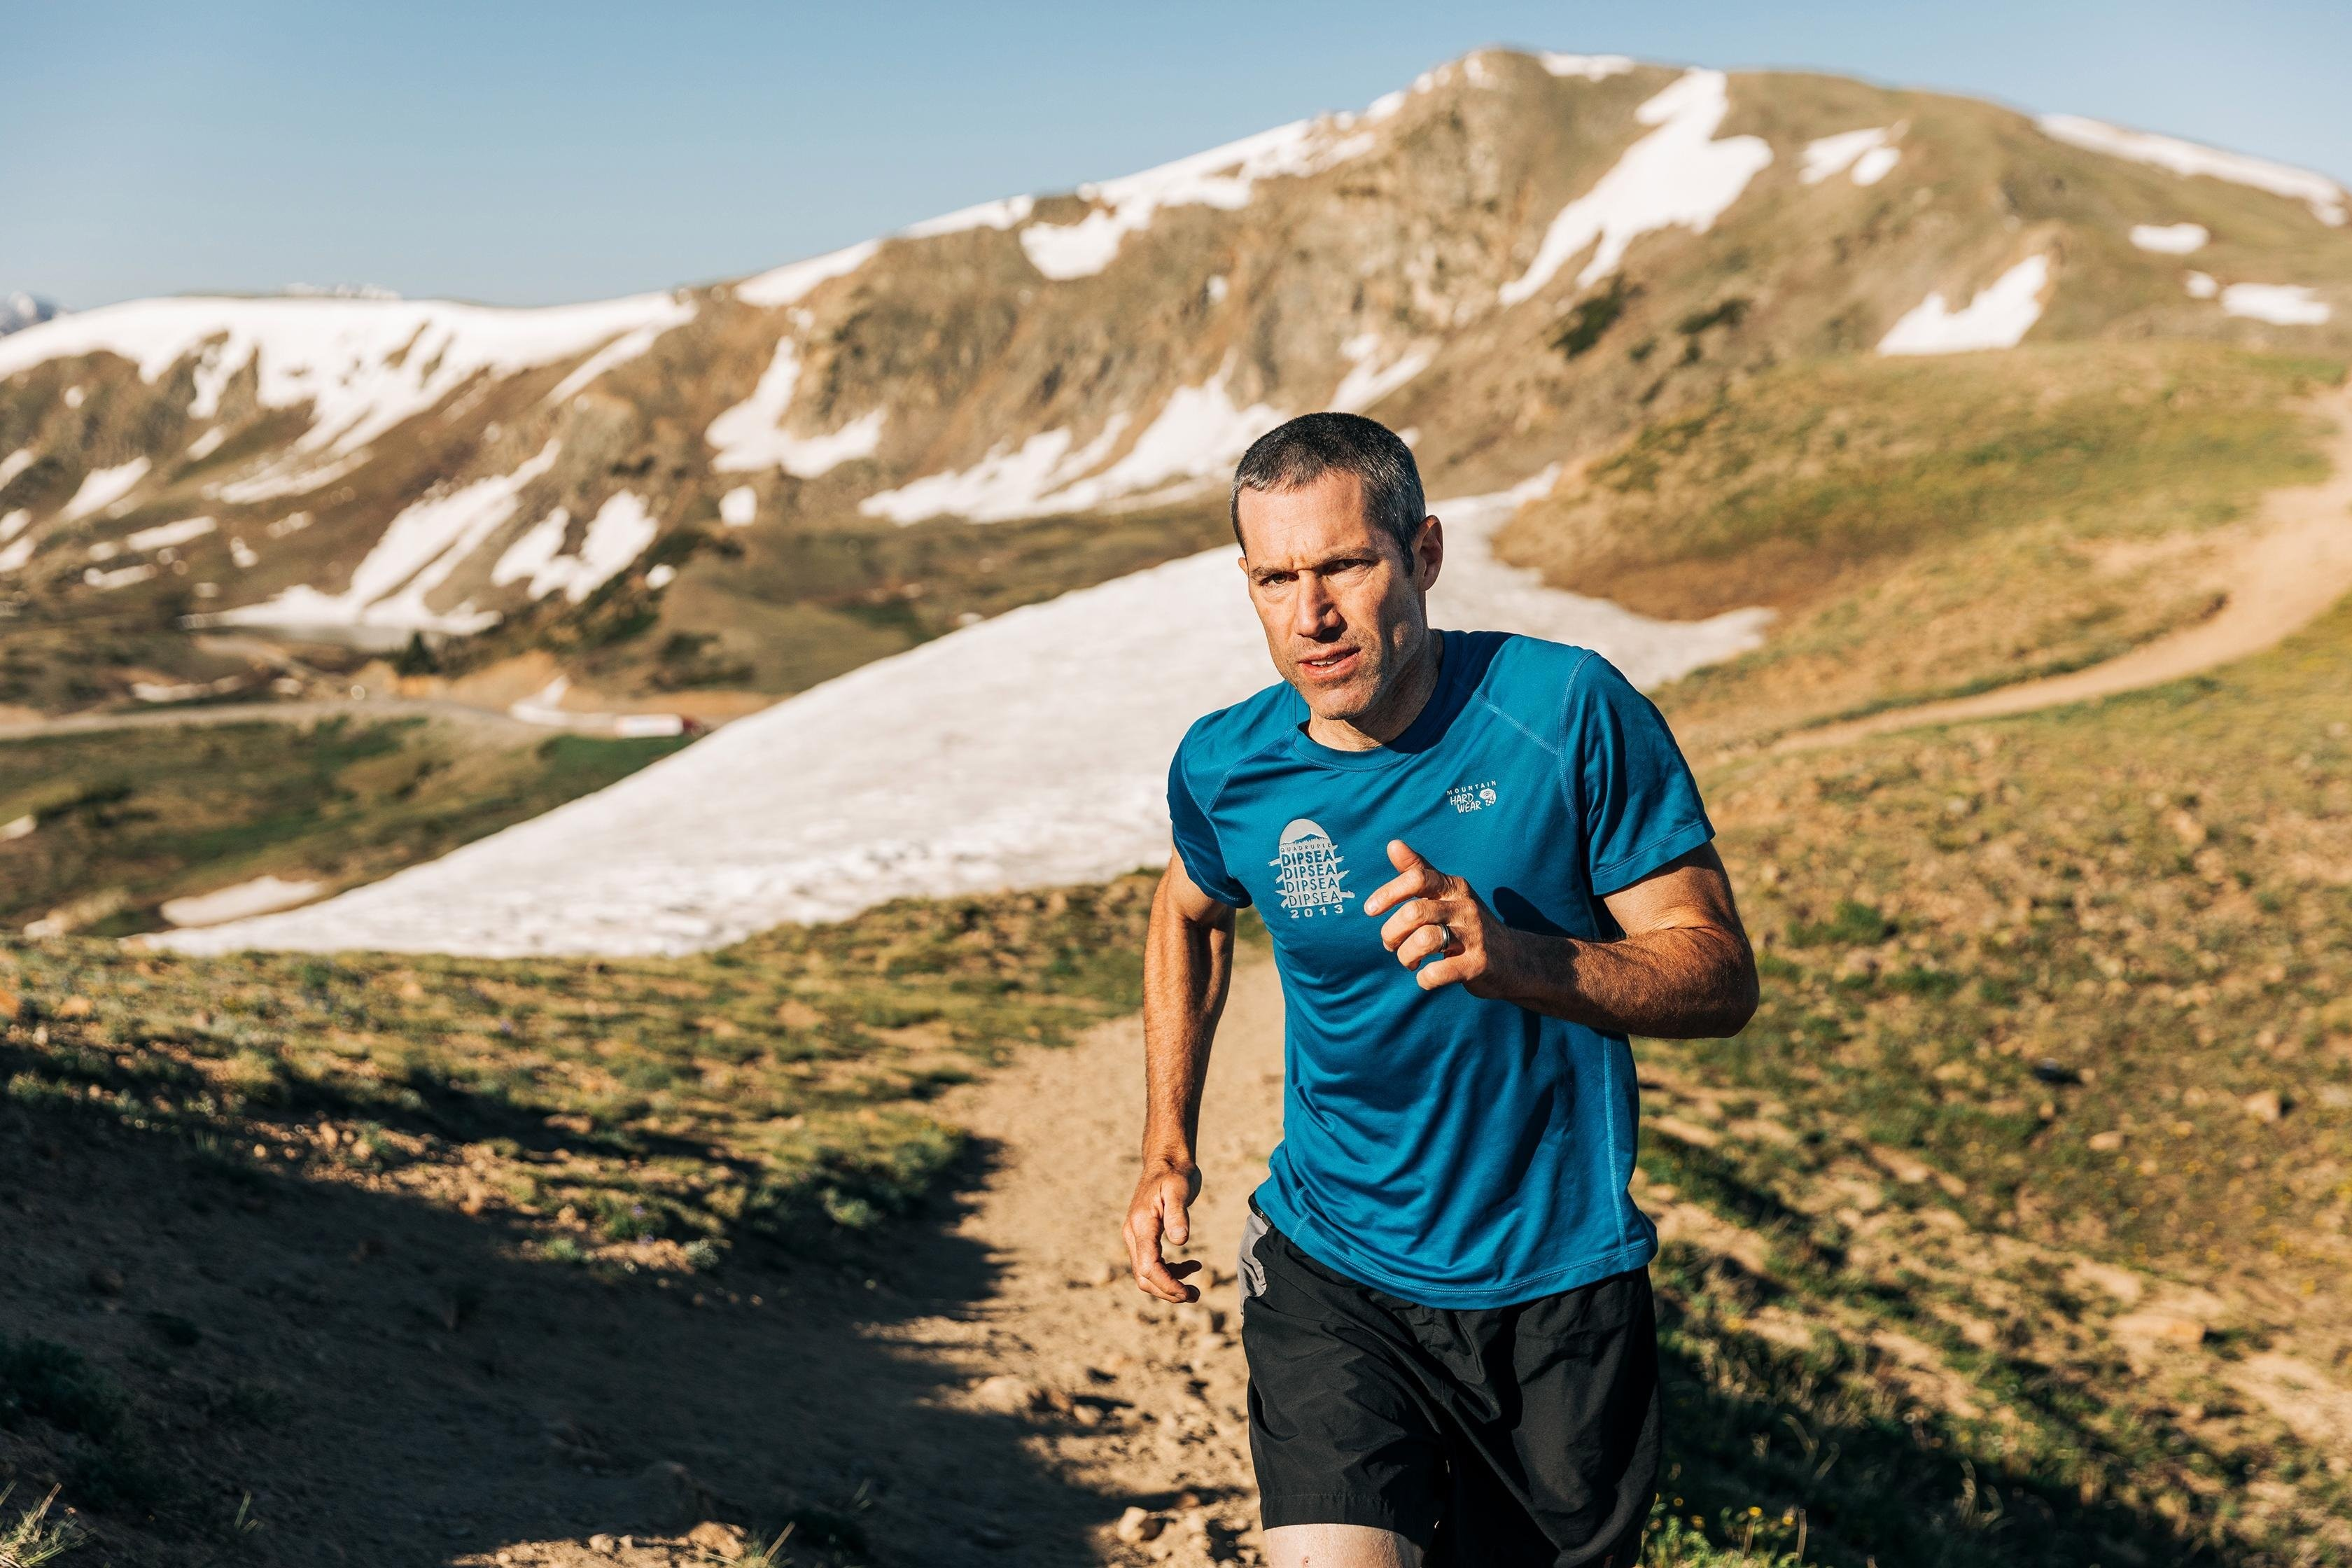 49-Year-Old Ultrarunner Dave Mackey Won't Back Down